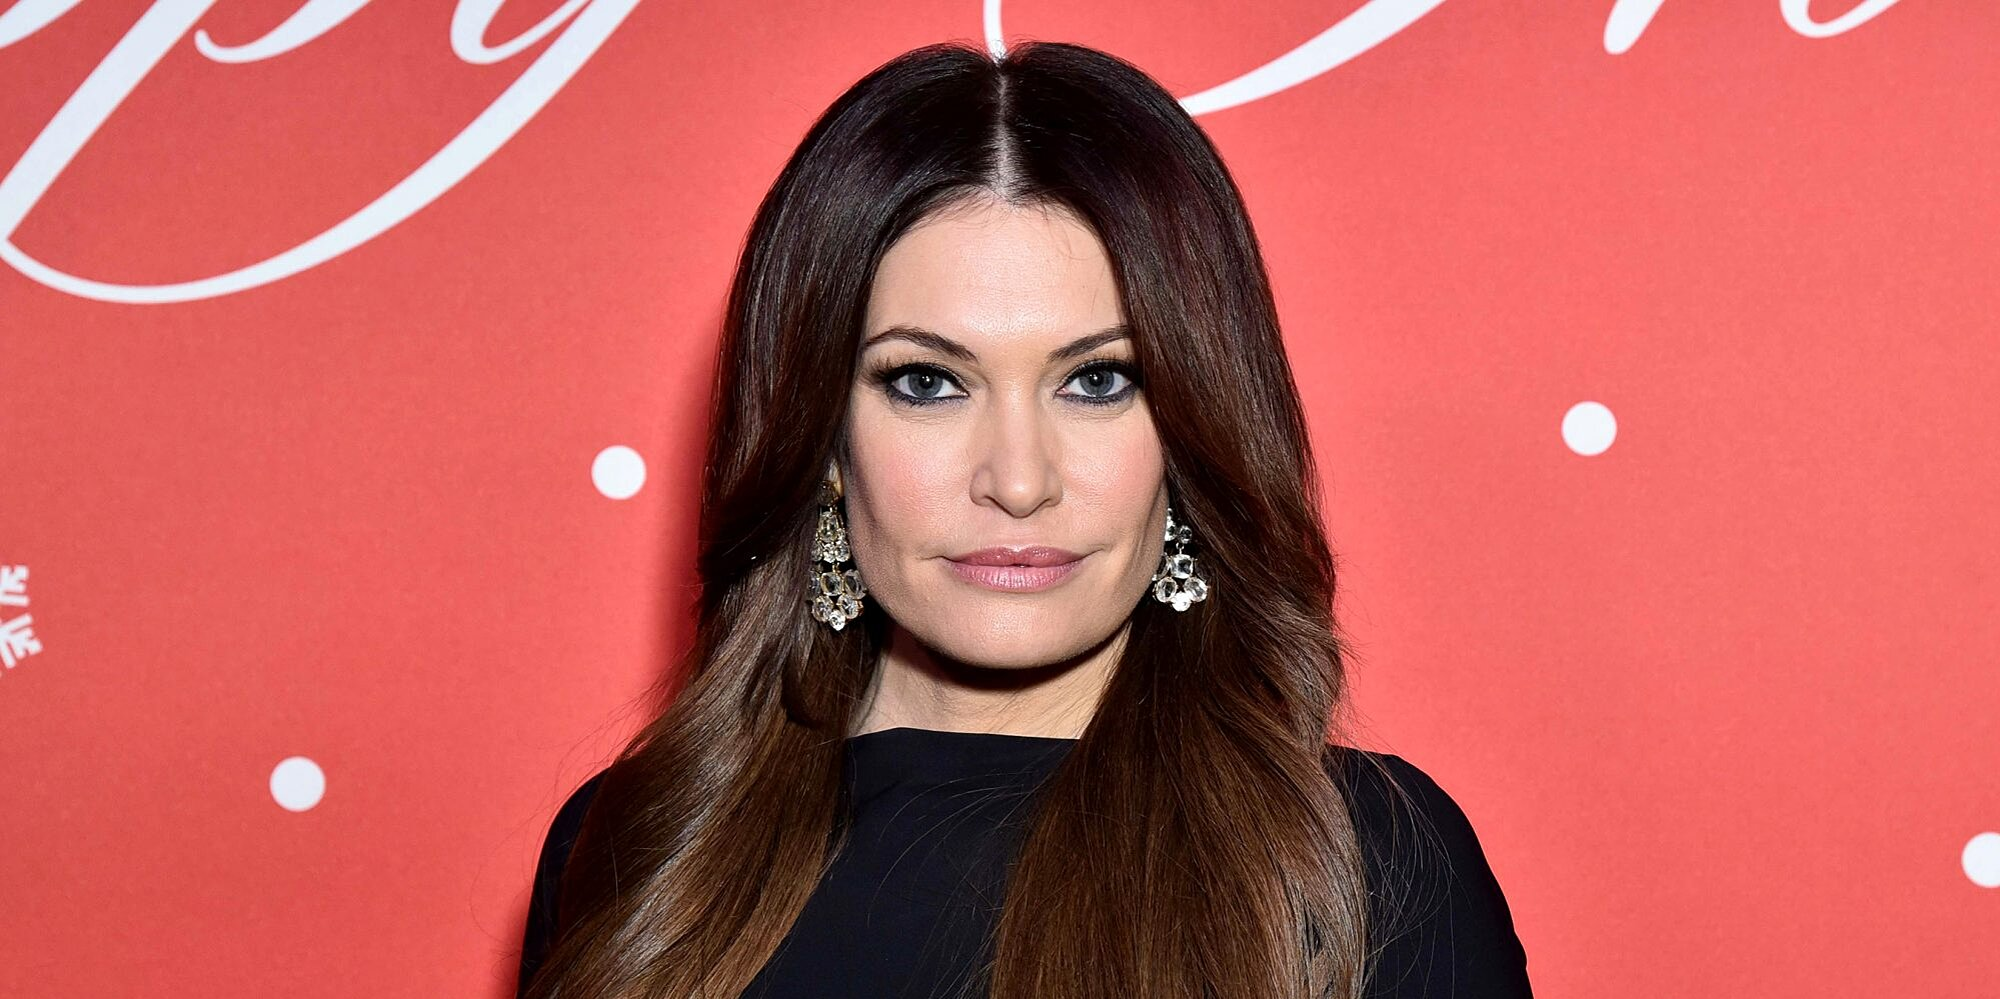 After Trump Campaign, Kimberly Guilfoyle Joins Disgraced Former Governor's Senate Bid